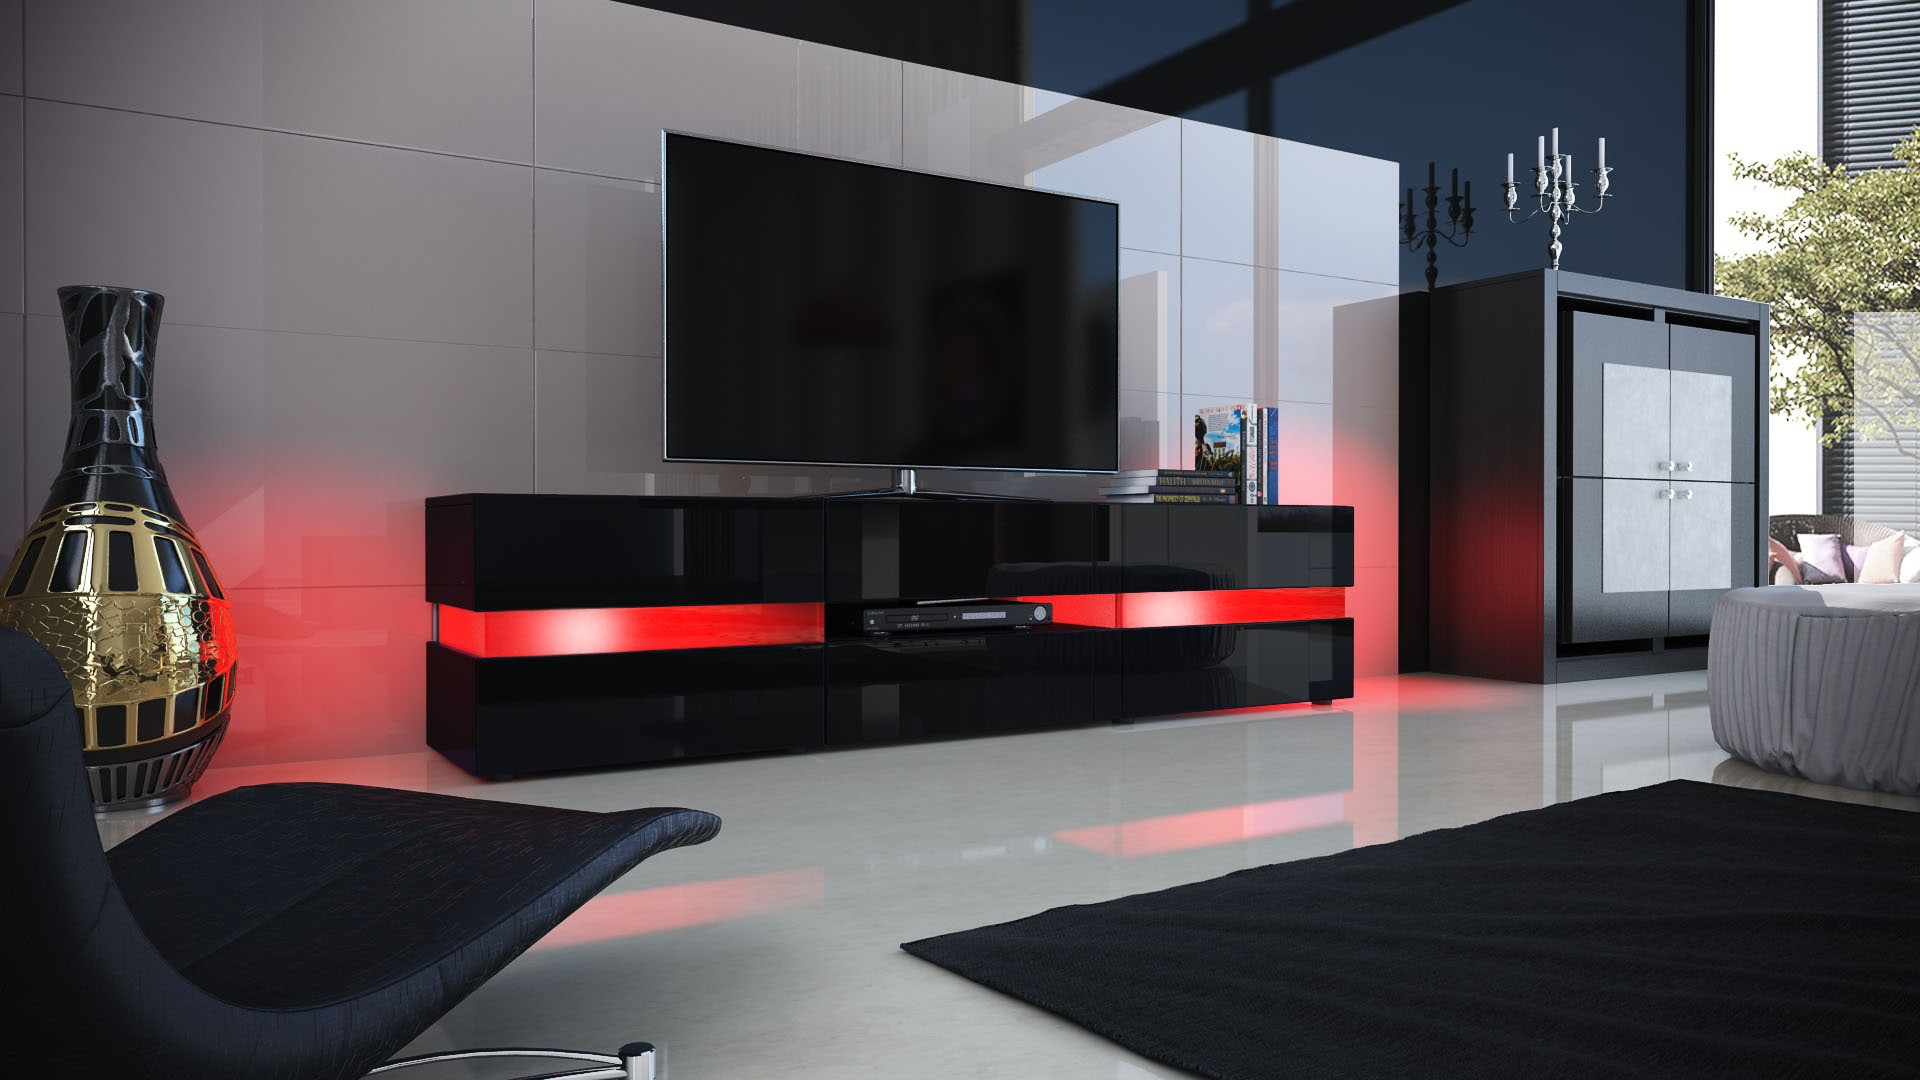 meuble design enti rement laqu noir avec led pour meubles tv desig. Black Bedroom Furniture Sets. Home Design Ideas